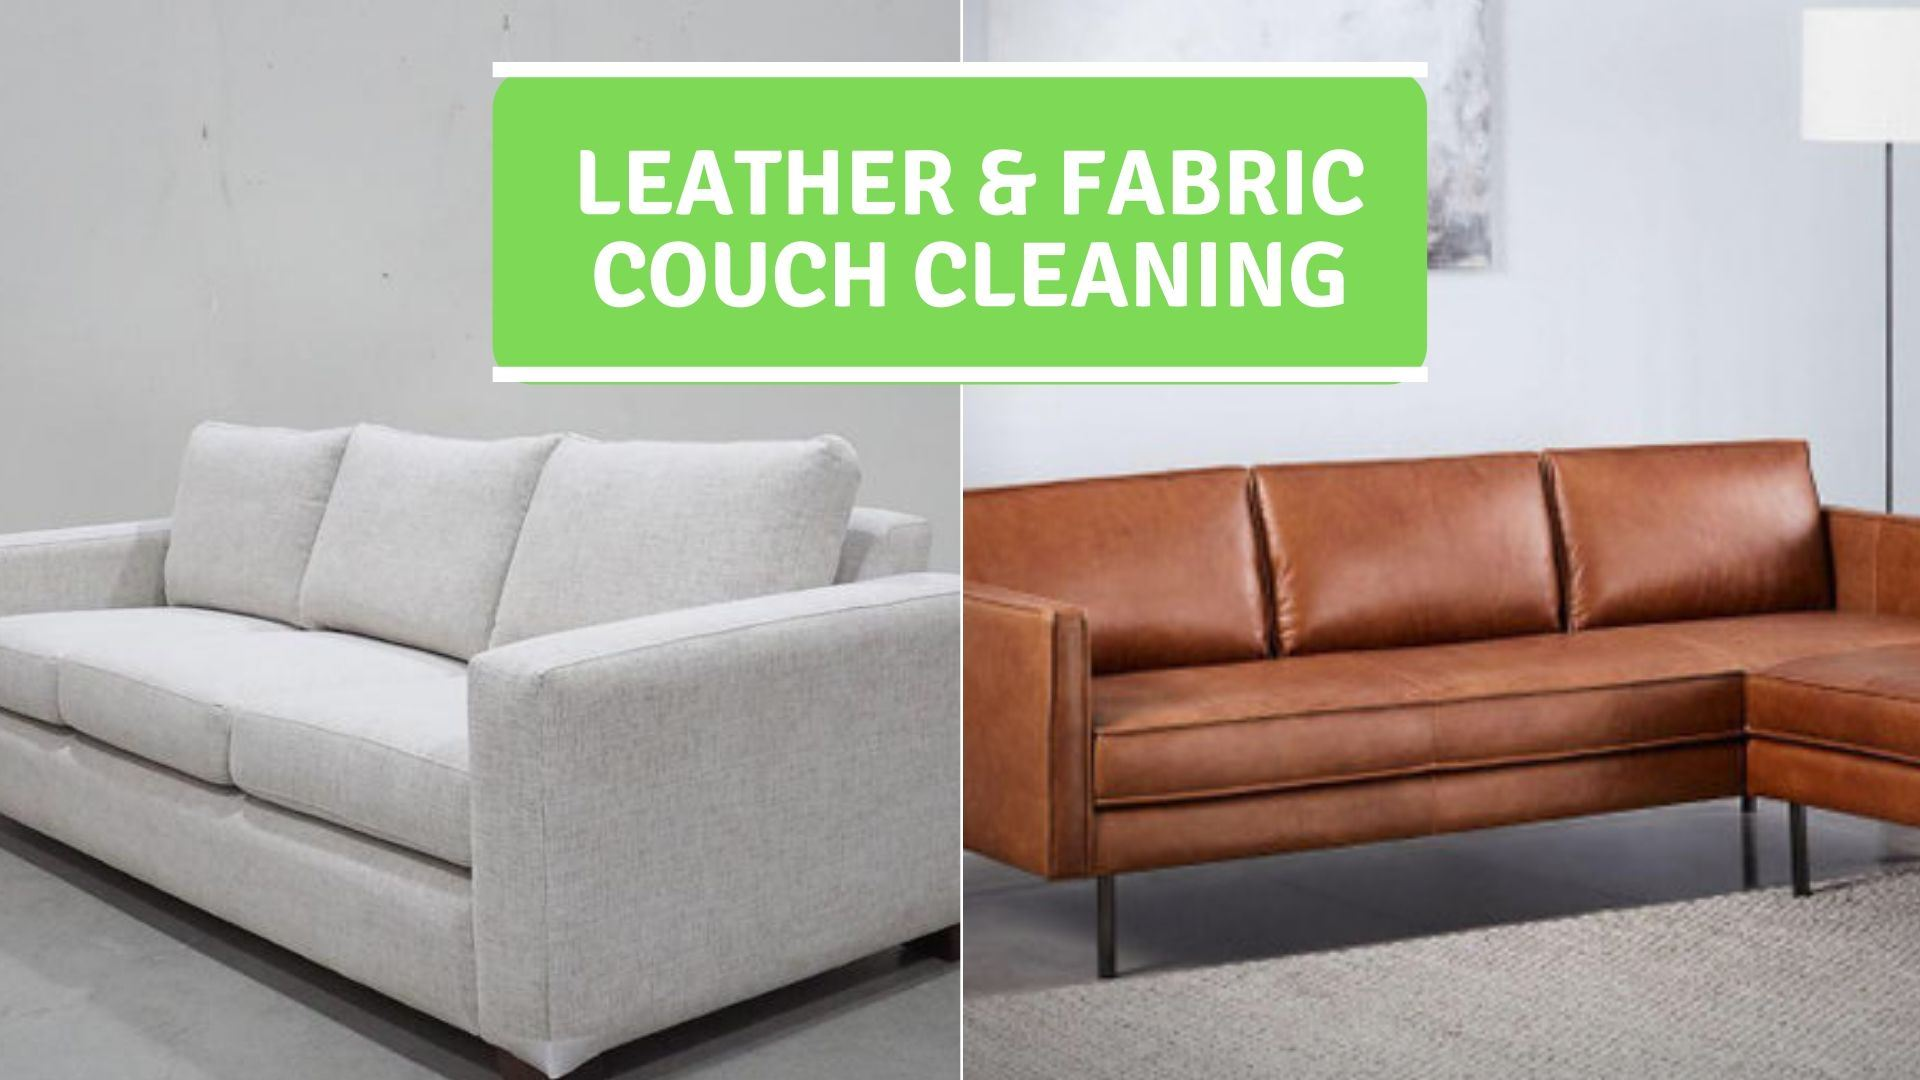 Leather & Fabric Couch Cleaning